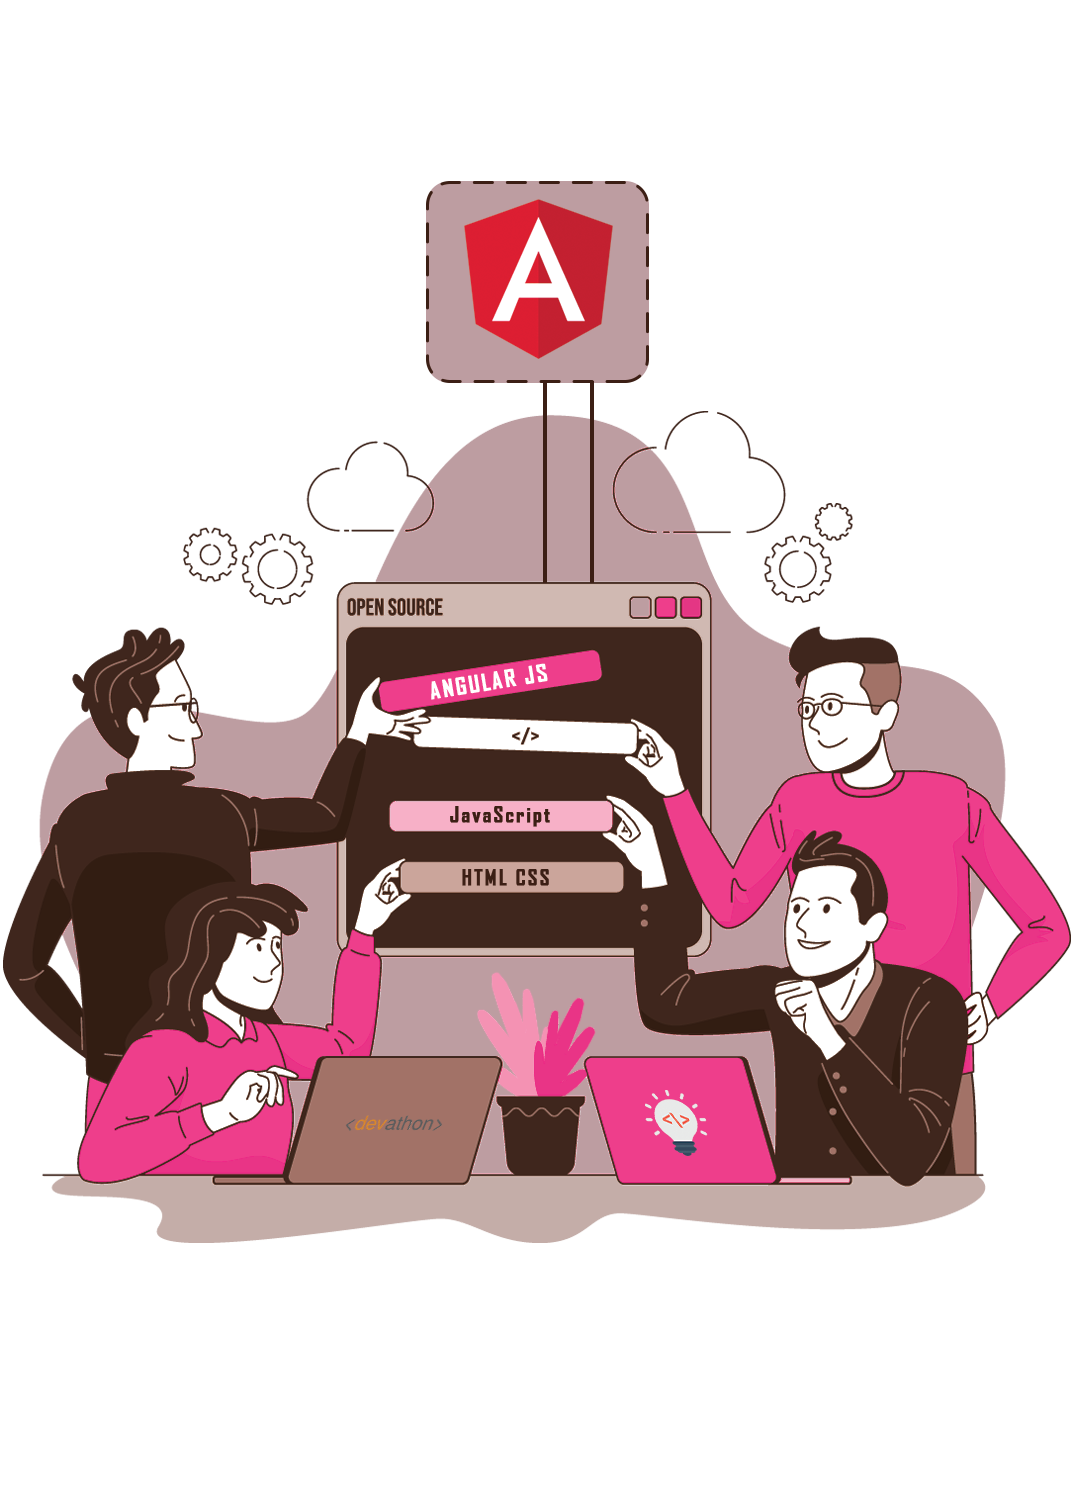 Hire dedicated AngularJS developer in India